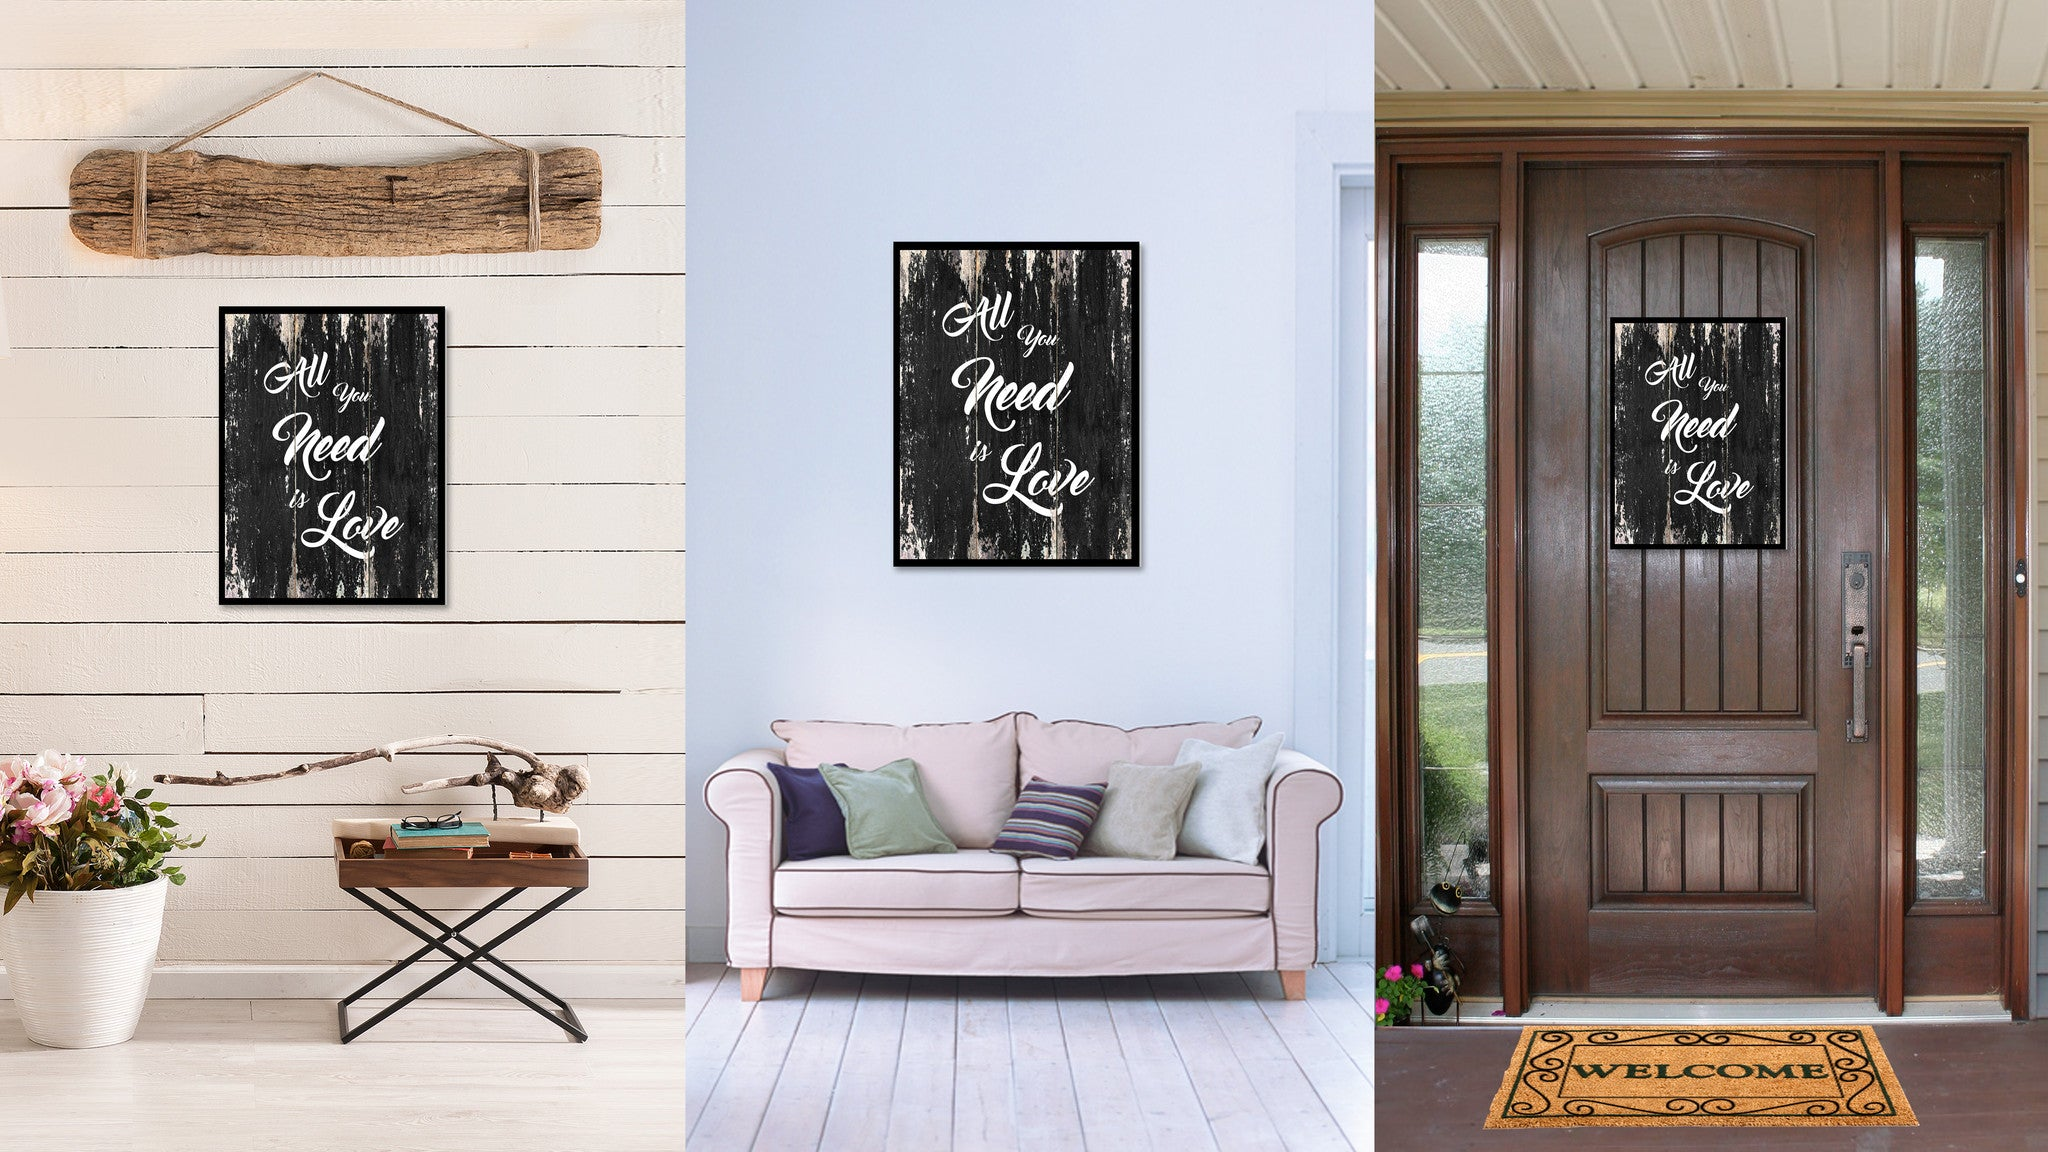 All you need is love Motivational Quote Saying Canvas Print with Picture Frame Home Decor Wall Art